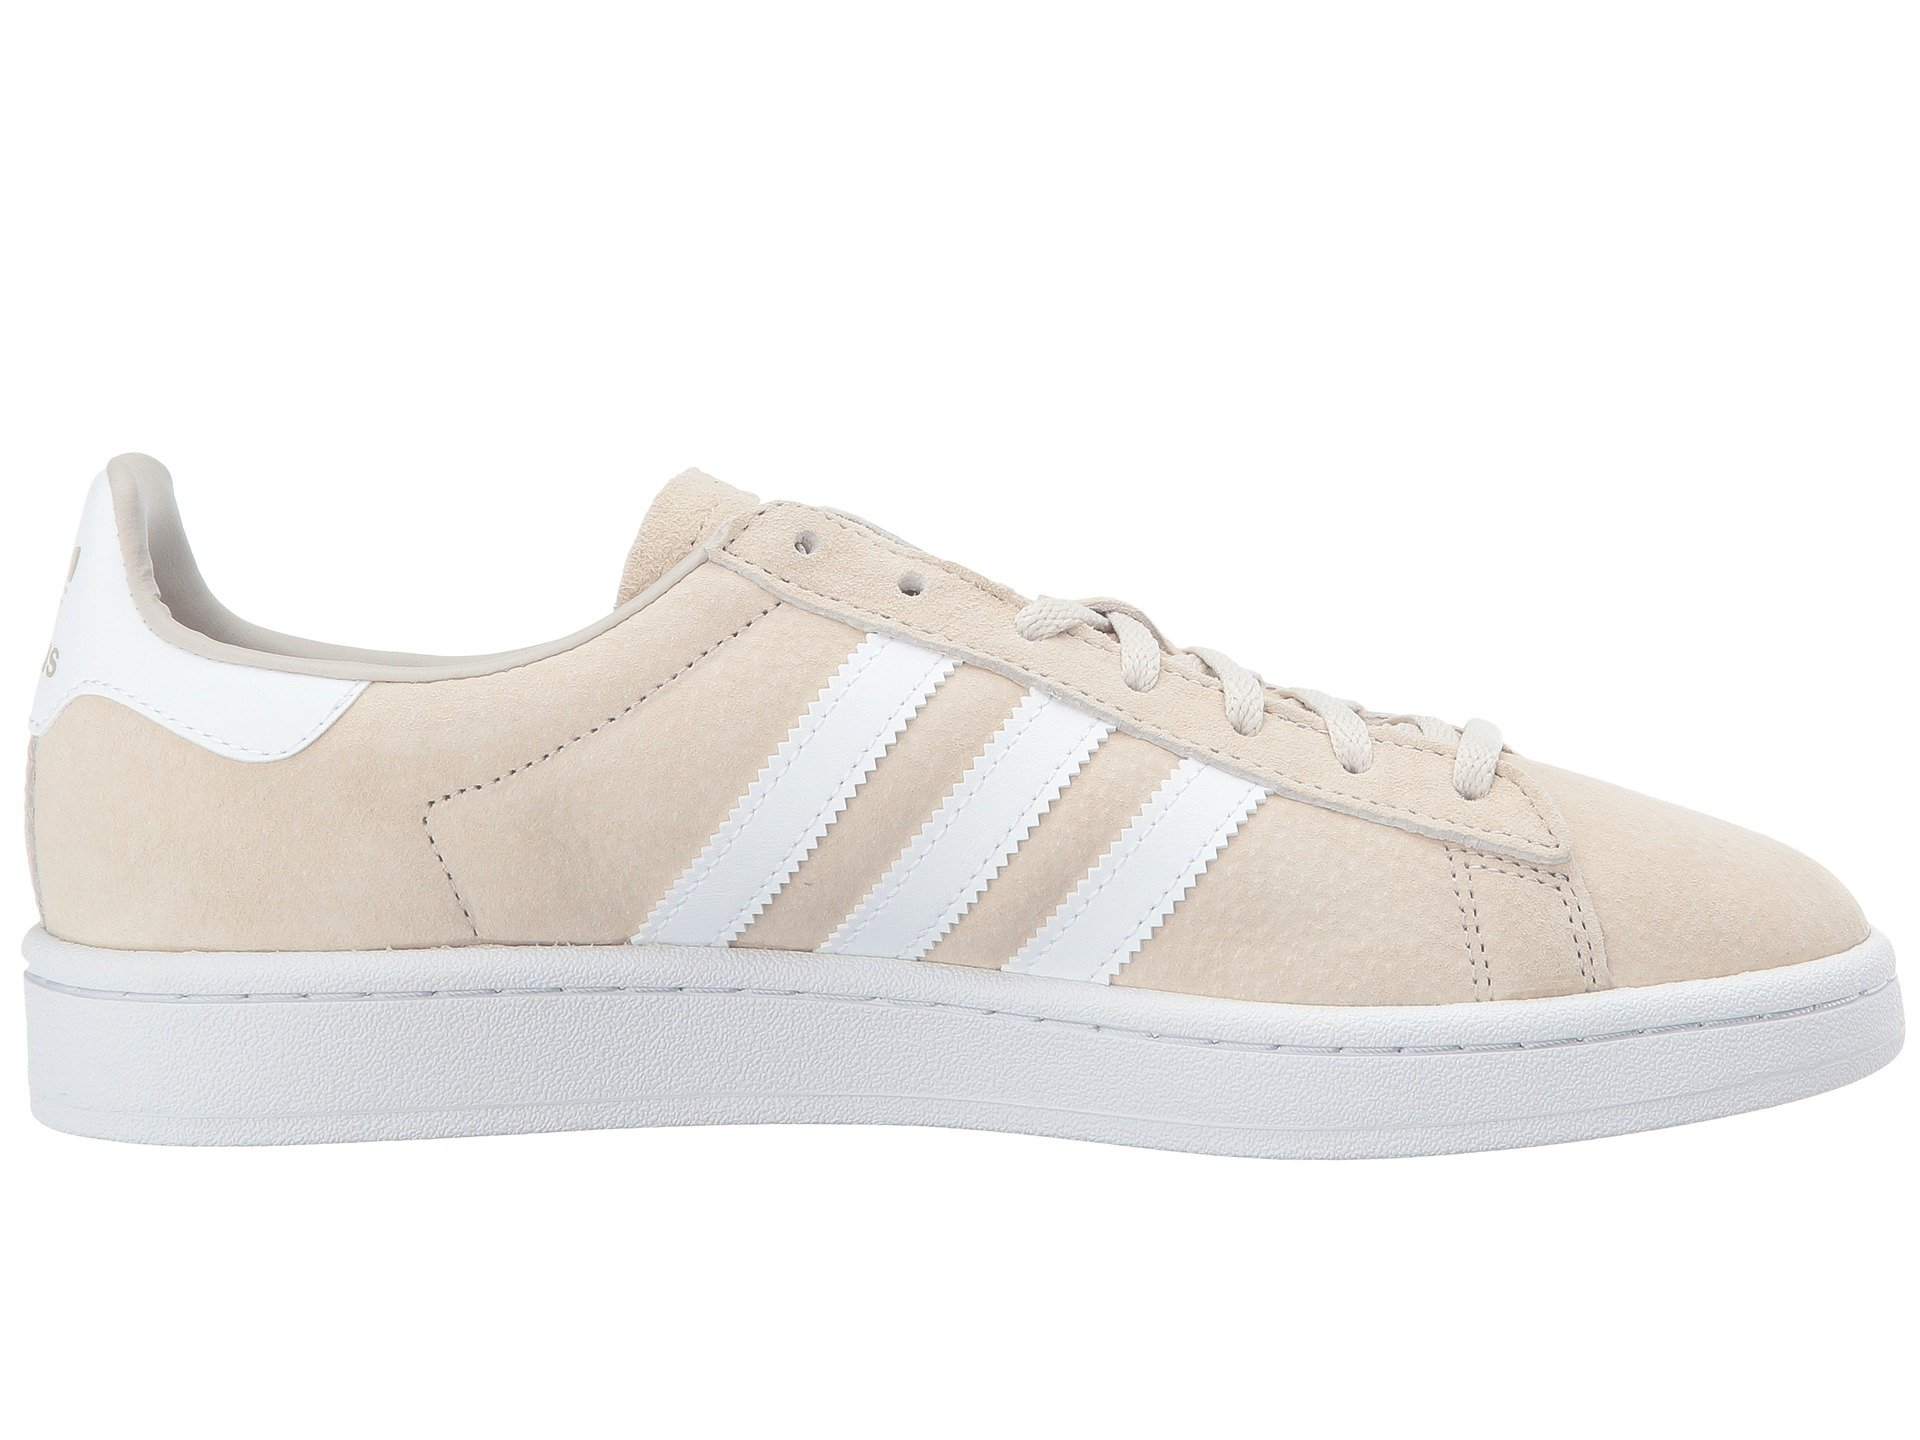 a5c34a981ae0dd Adidas Wings And Horns Shoes